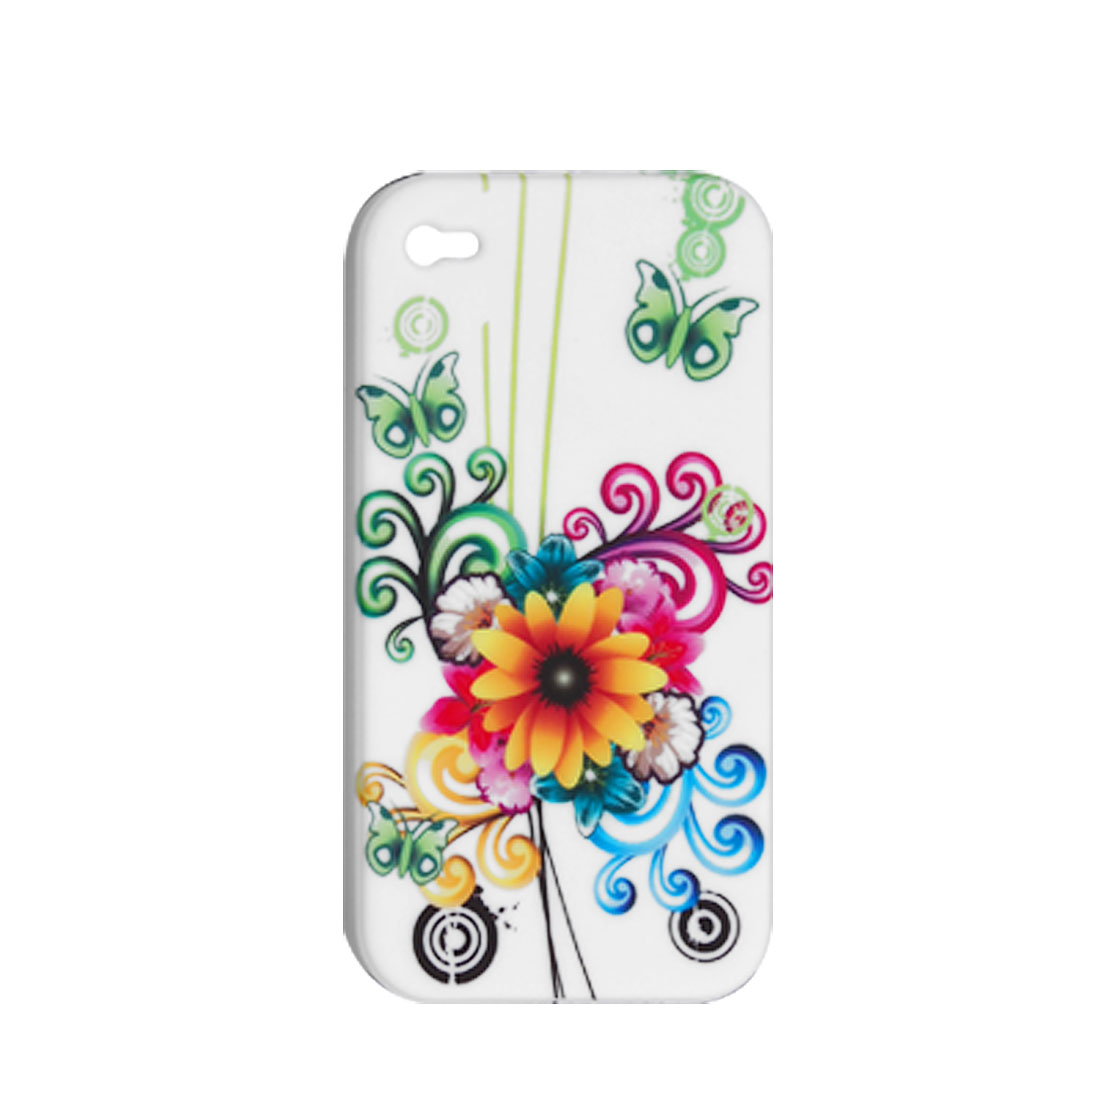 Flower Pattern Soft Plastic Protective Case for Apple iPhone 4 4G